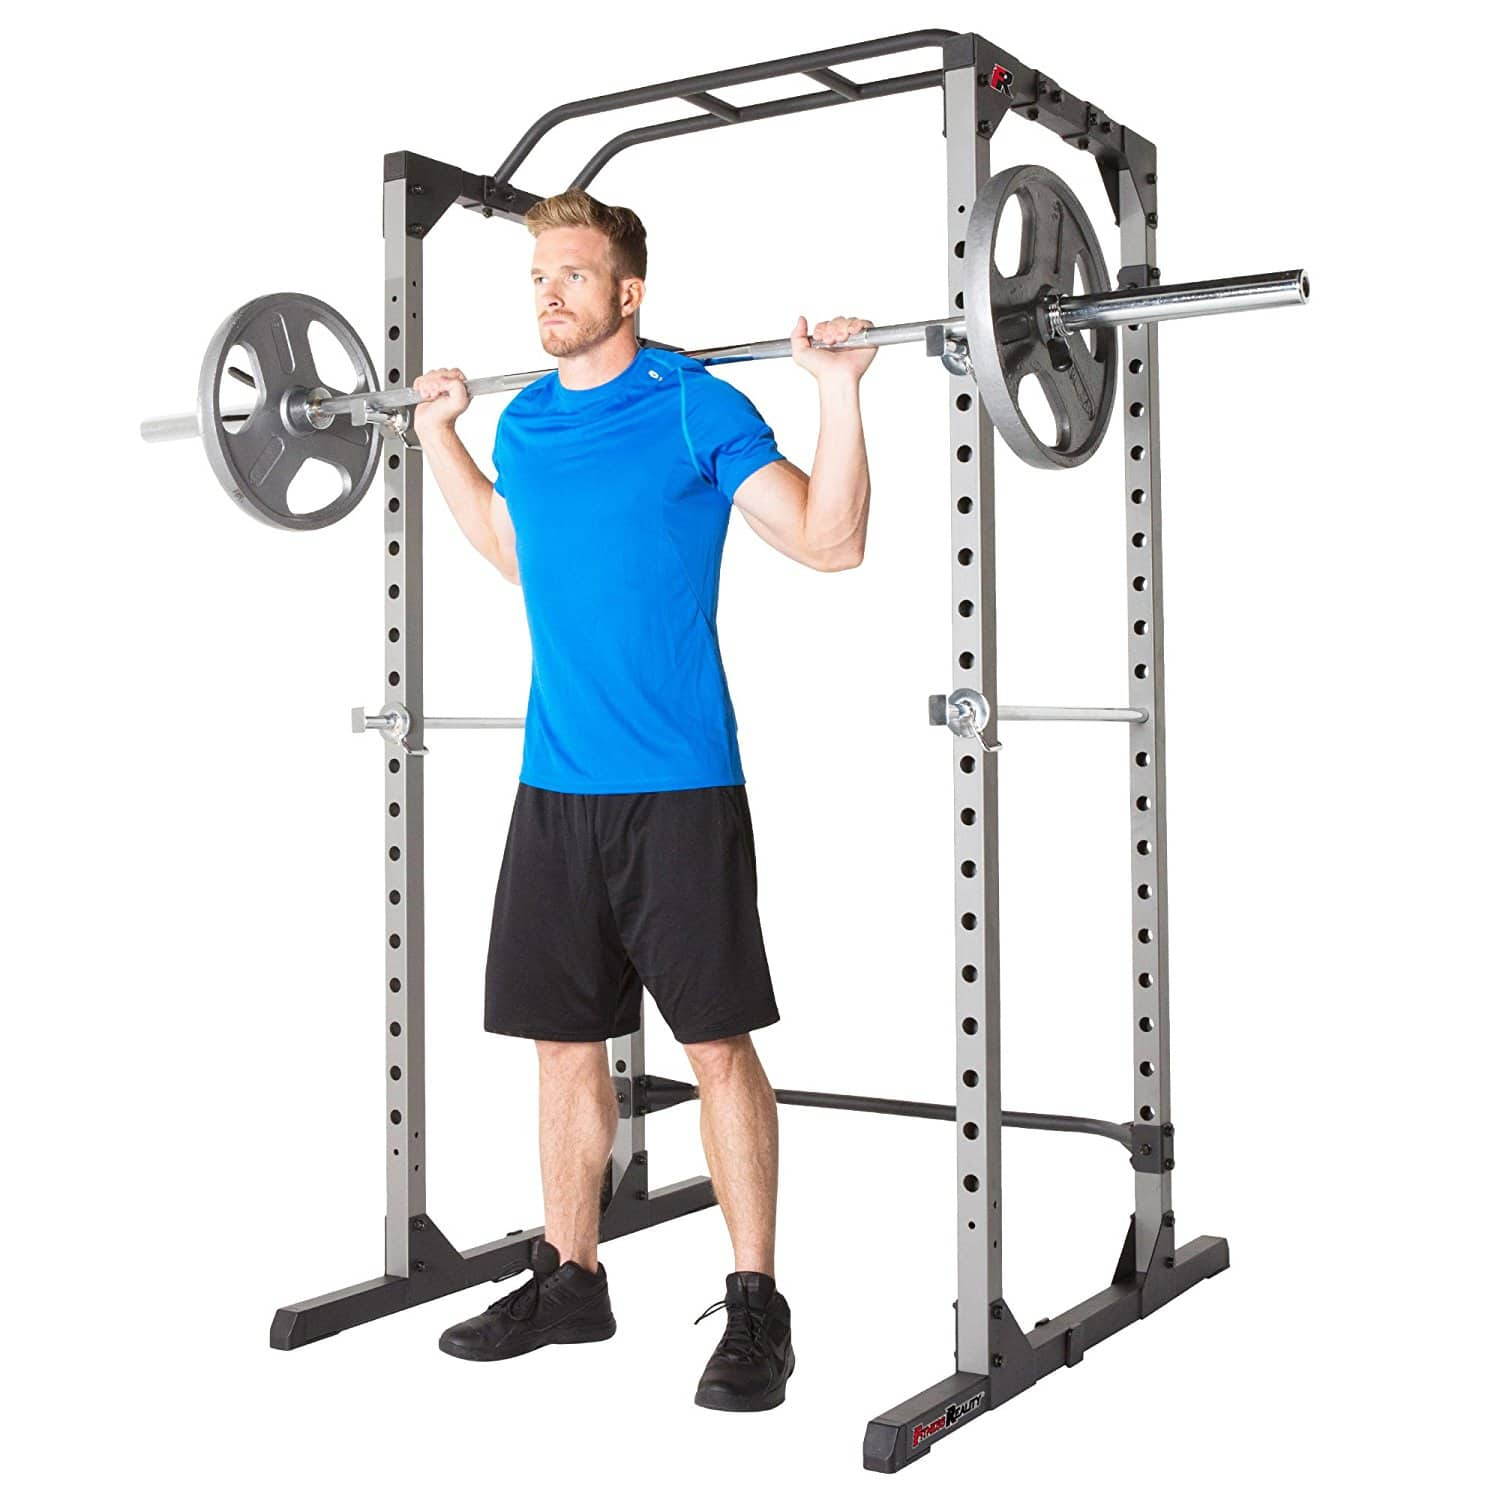 Free Weights Walmart: Fitness Reality 810XLT Super Max Power Cage (800lbs